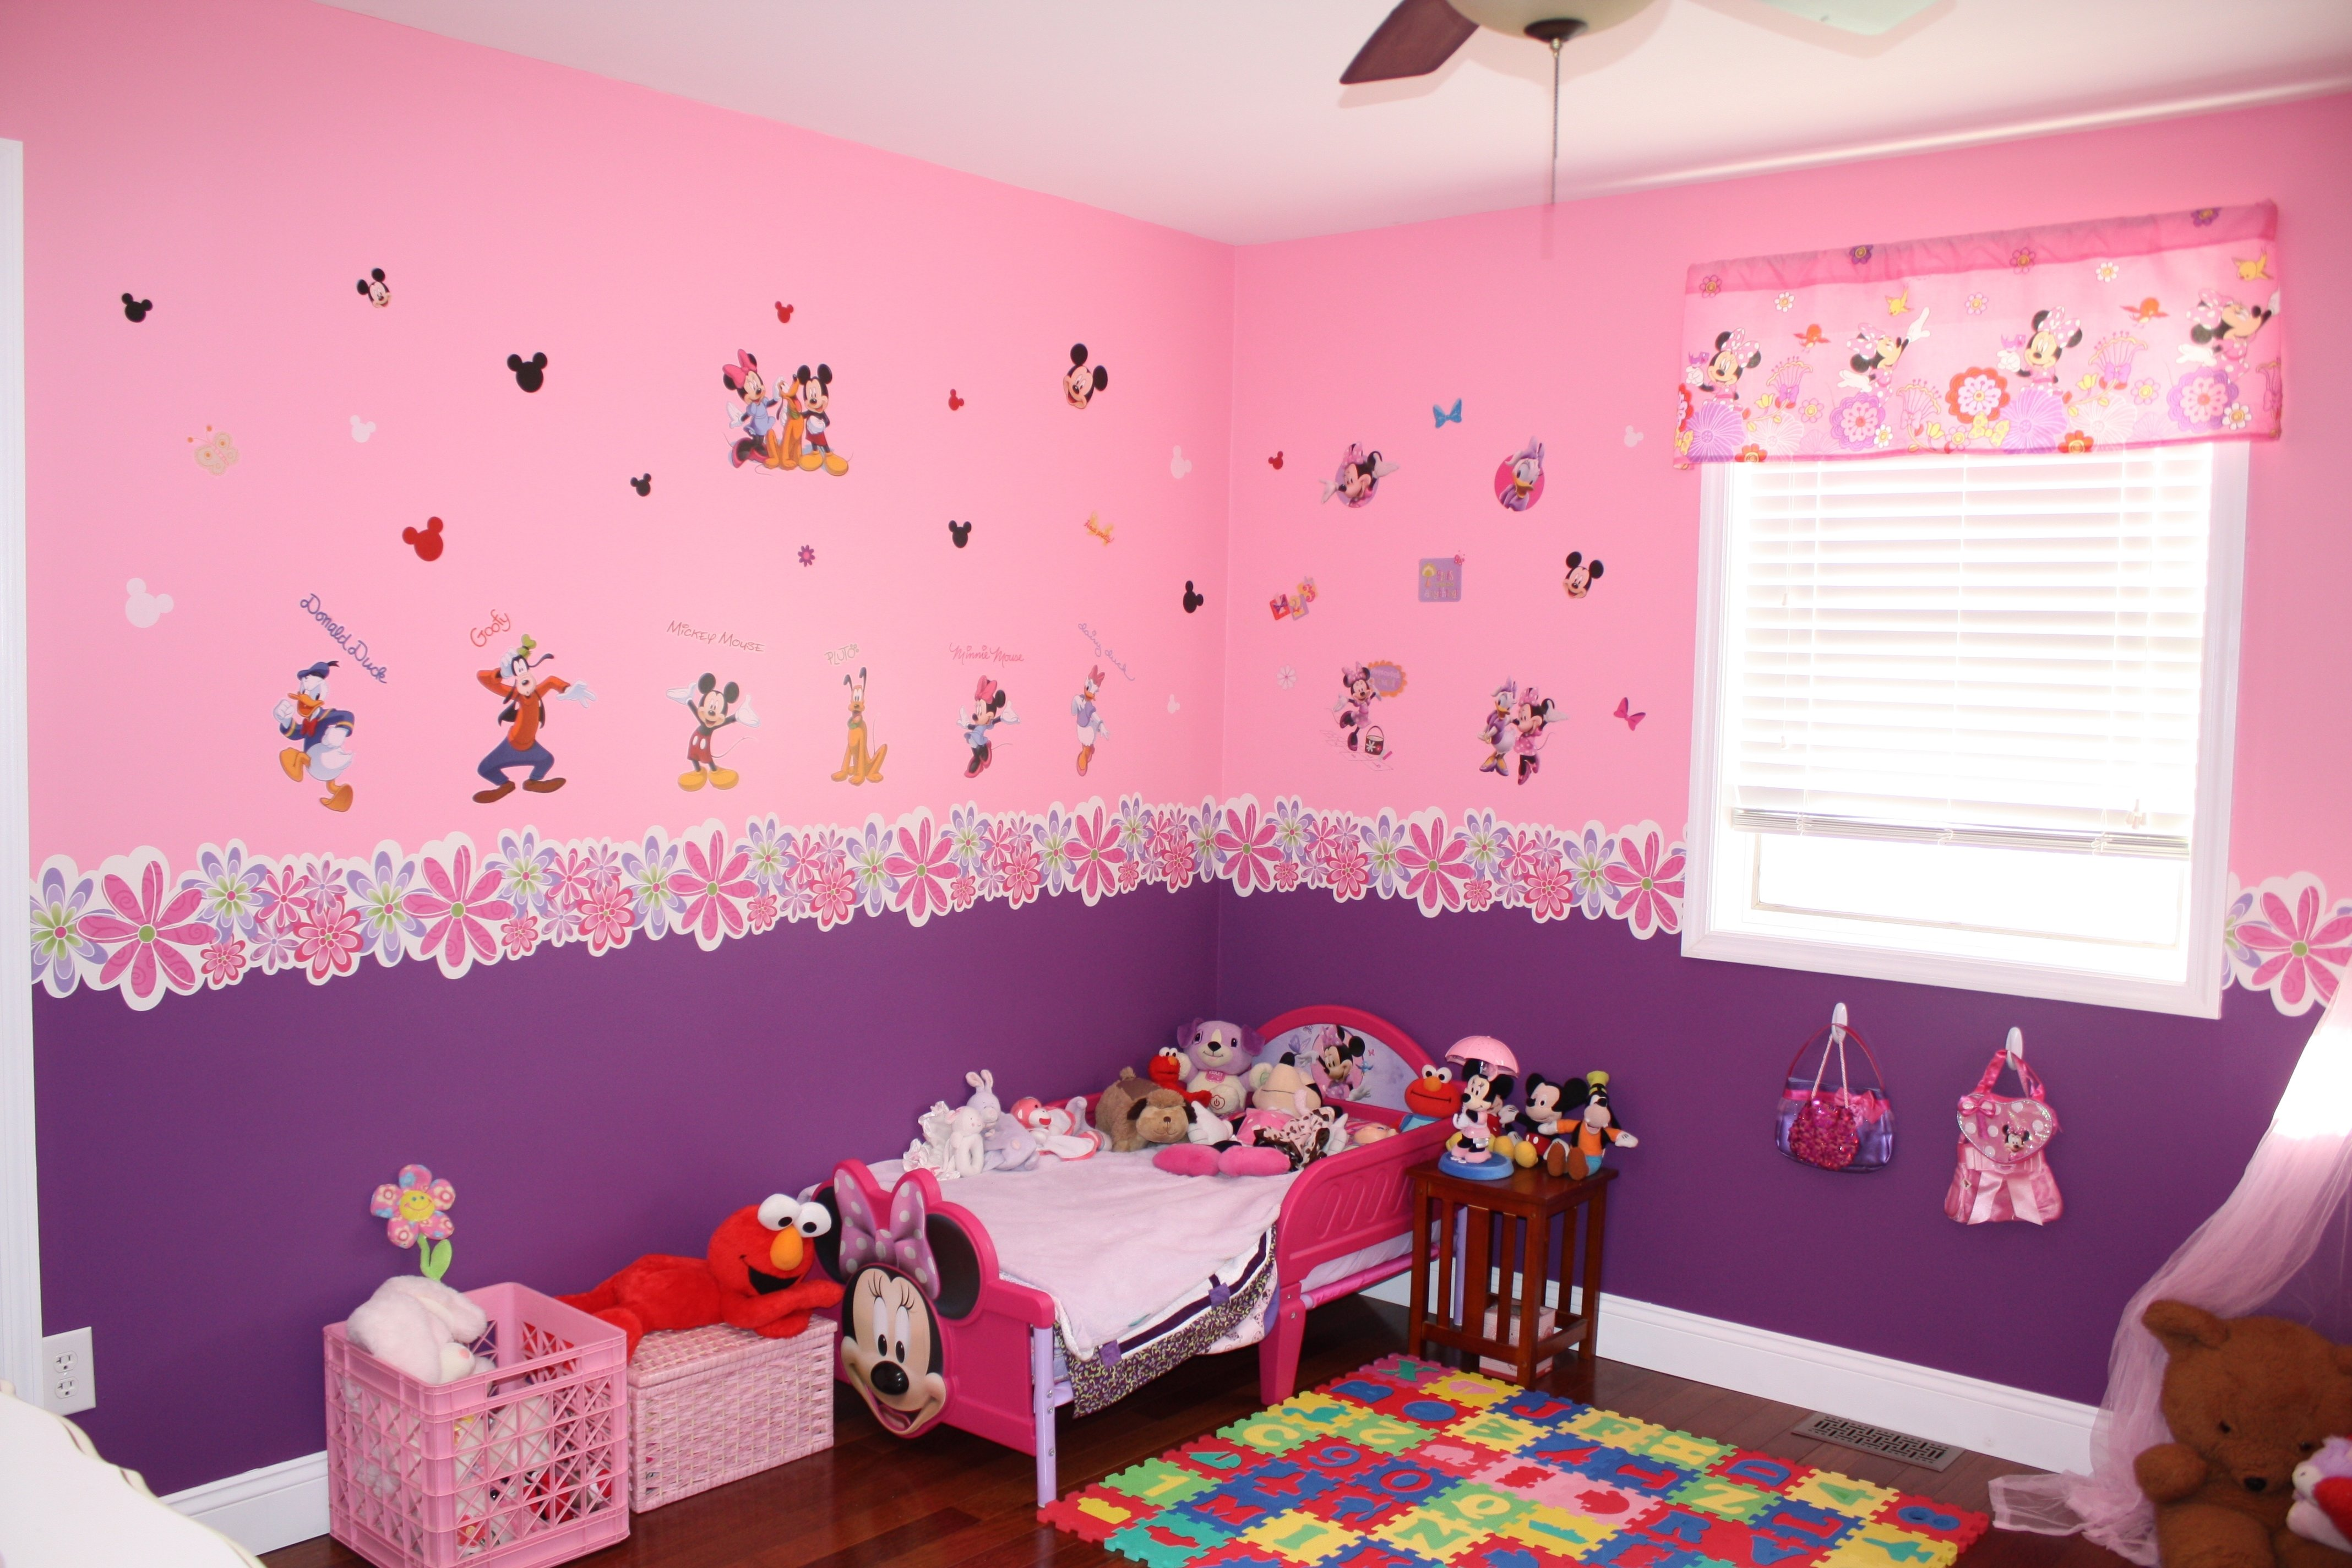 10 Stylish Minnie Mouse Room Decor Ideas decorations 56 minnie mouse kids room disney princess crown also 2020